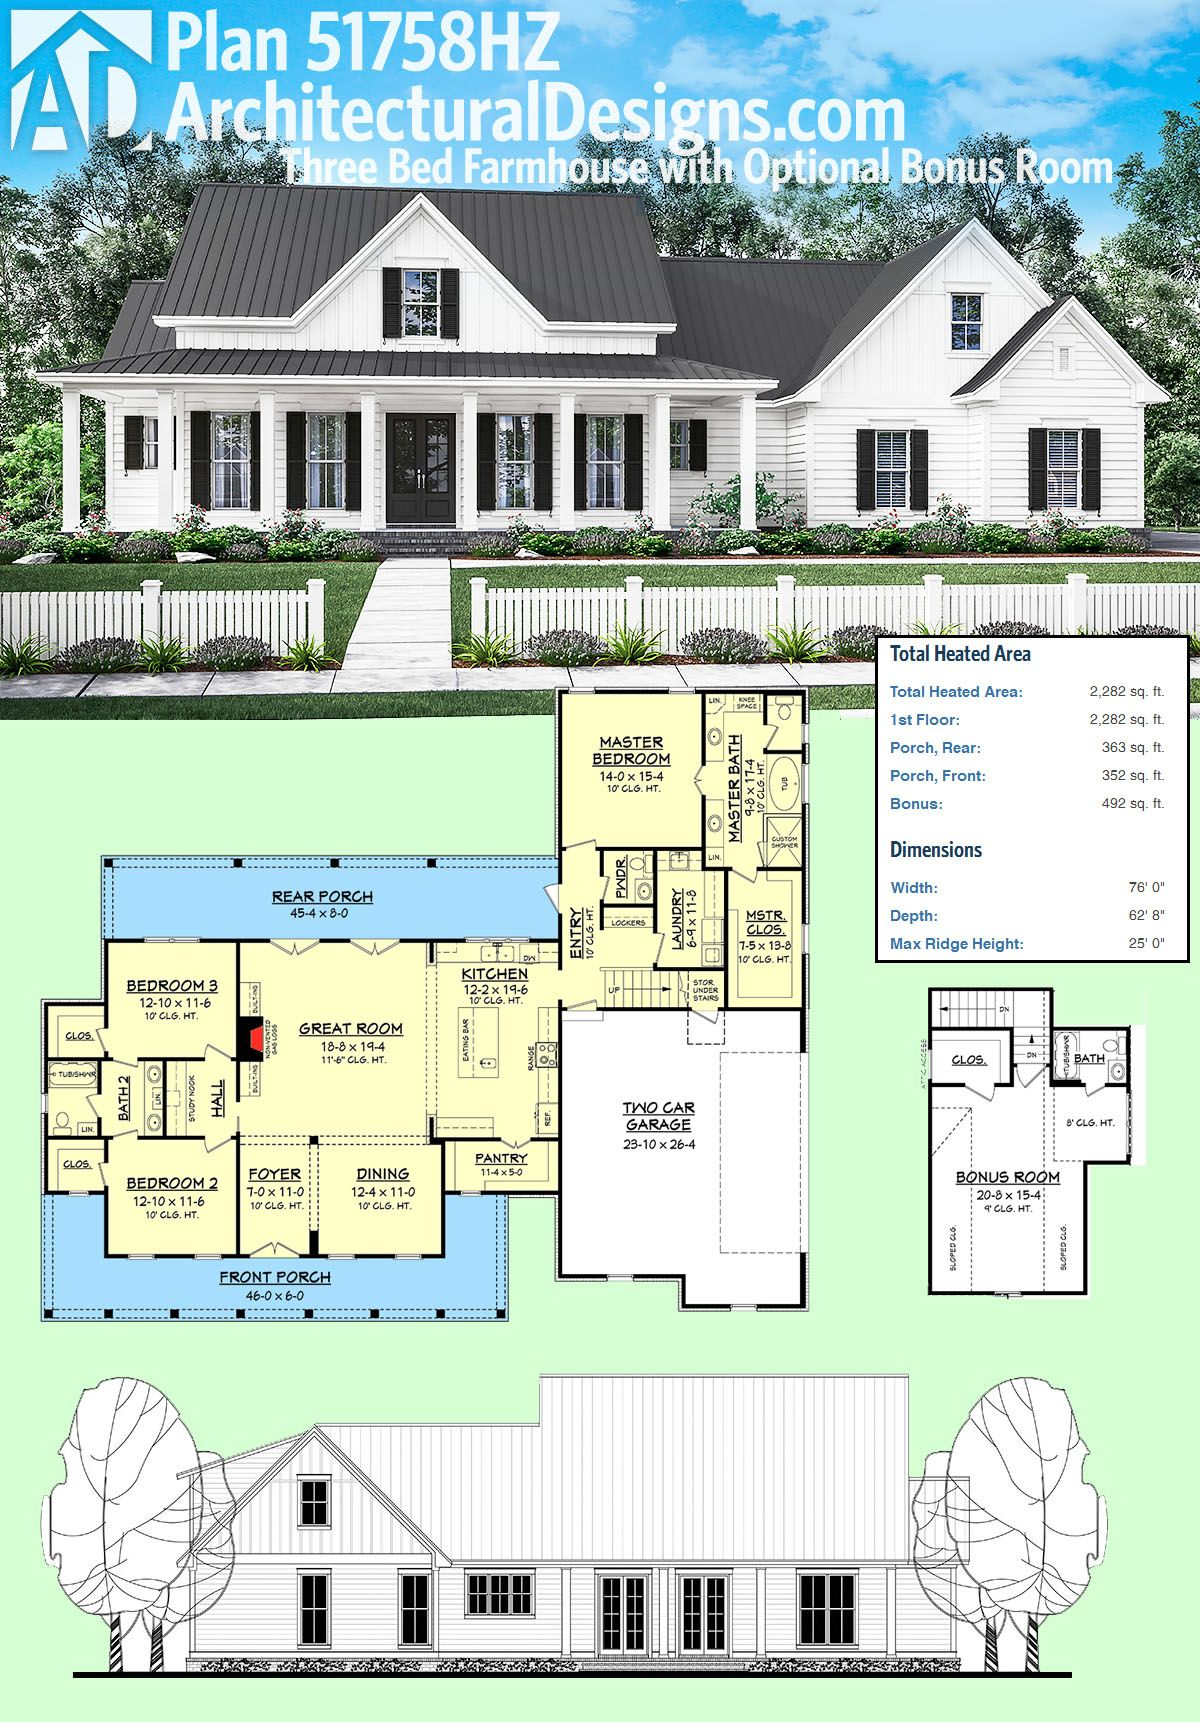 Architectural Designs Plan 51758hz Is A 3 Bed Farmhouse